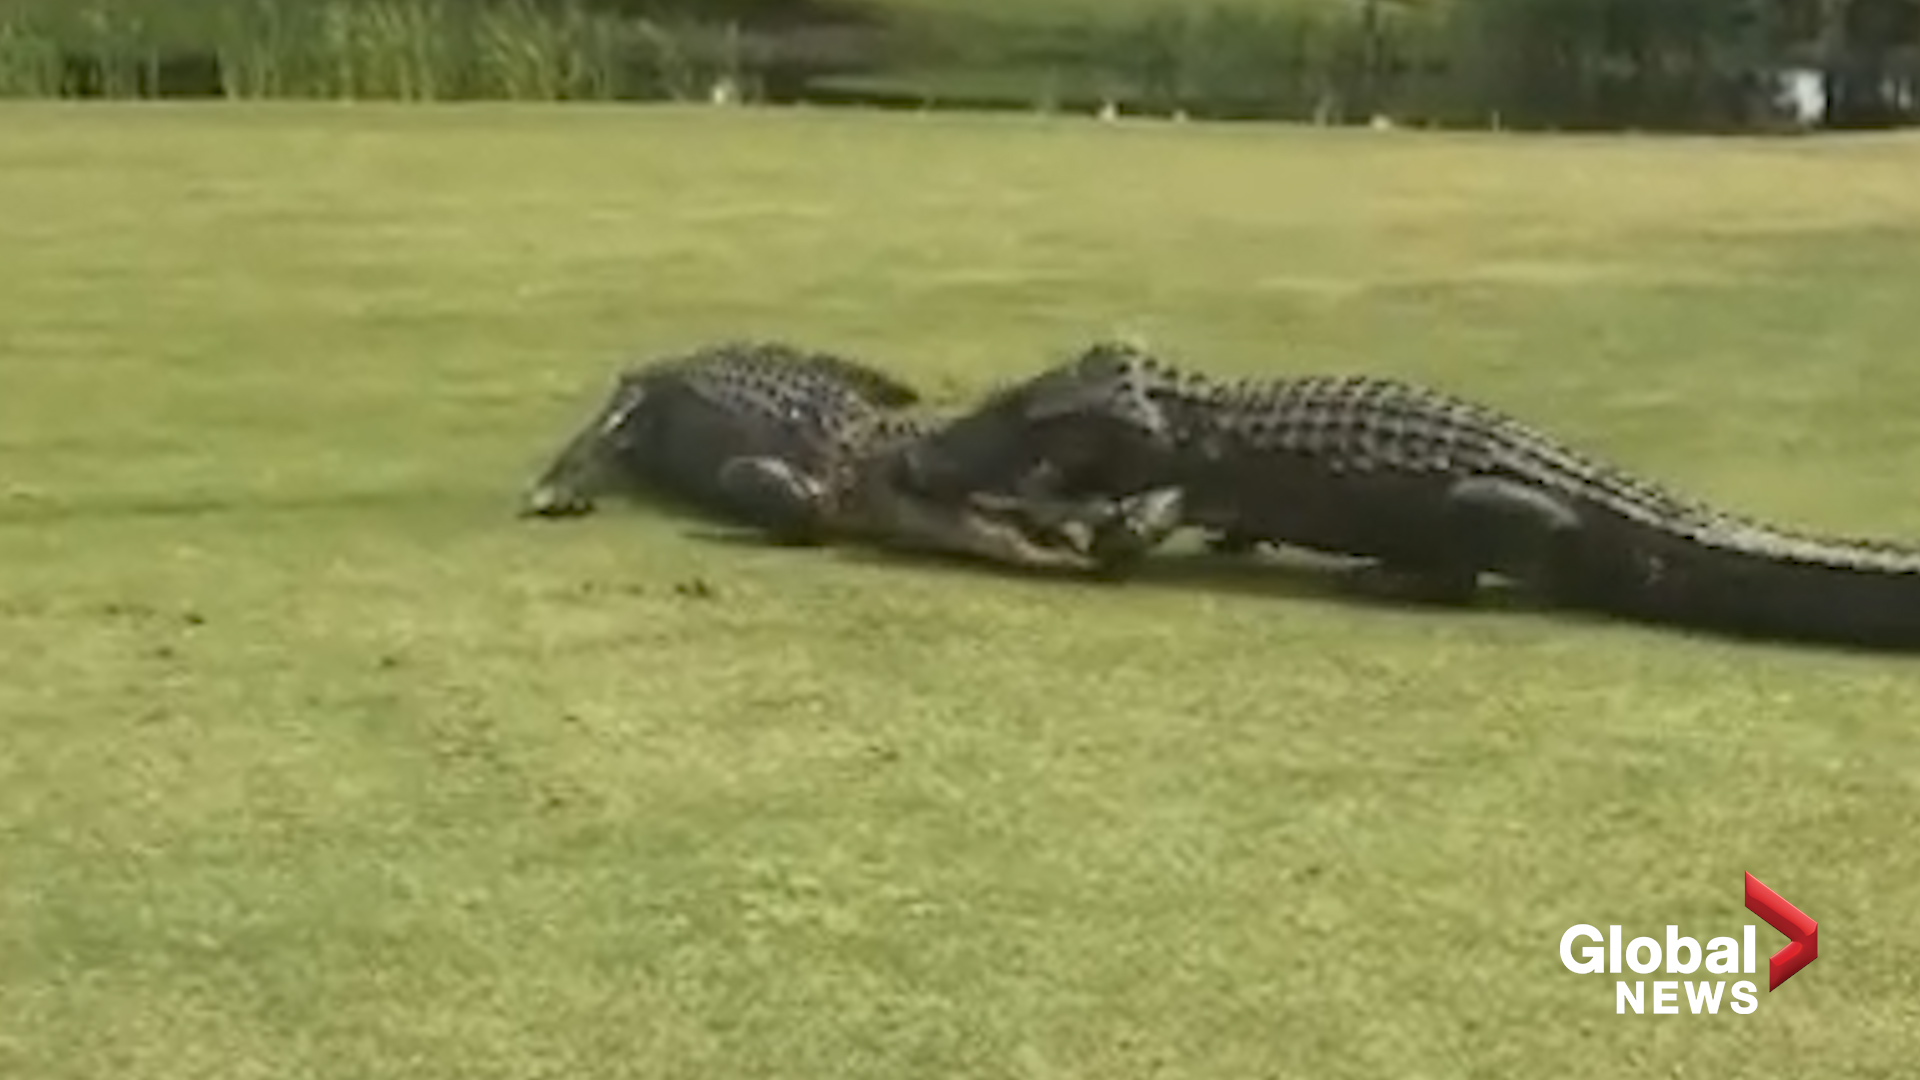 Two Large Alligators Caught Fighting On Golf Course In South Carolina Watch News Videos Online